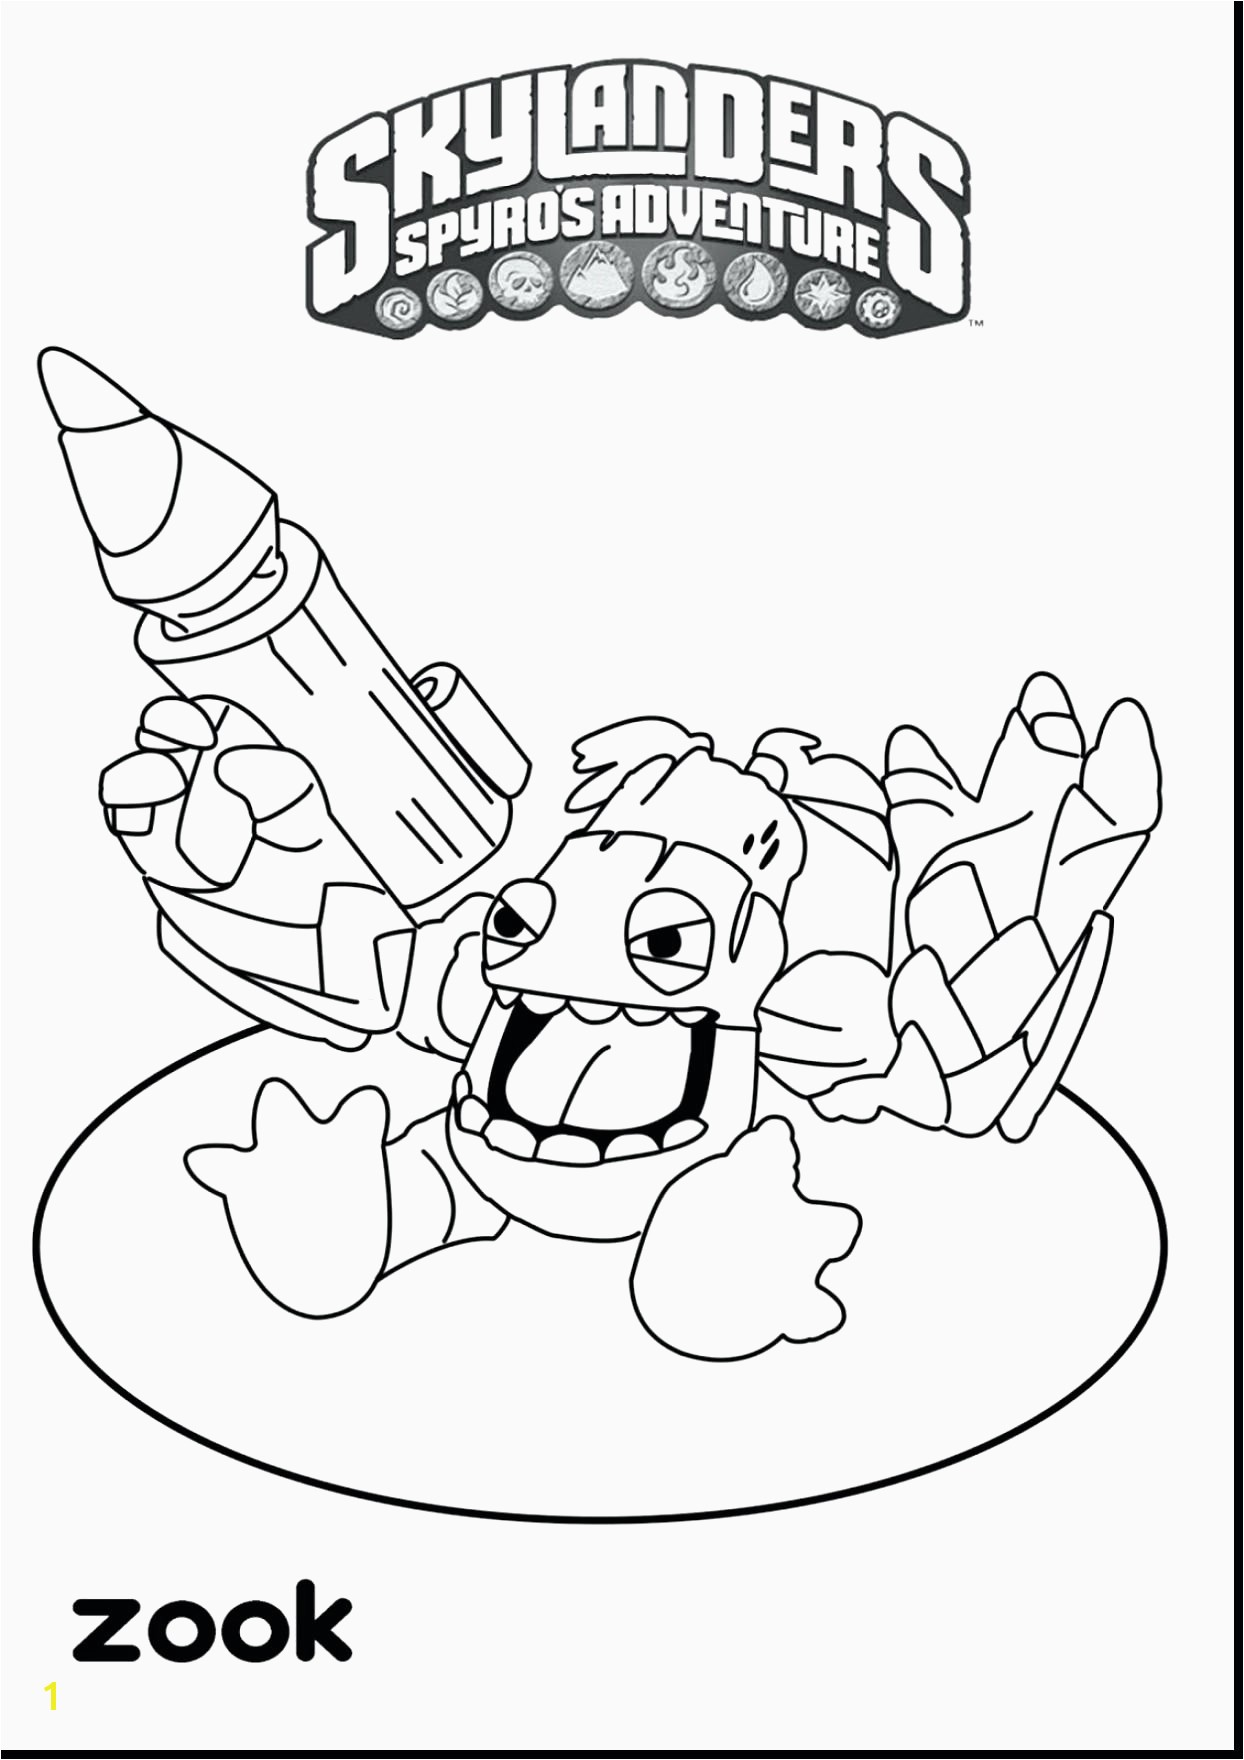 Coloring Pages Of astronauts New astronaut Coloring Sheet Gallery